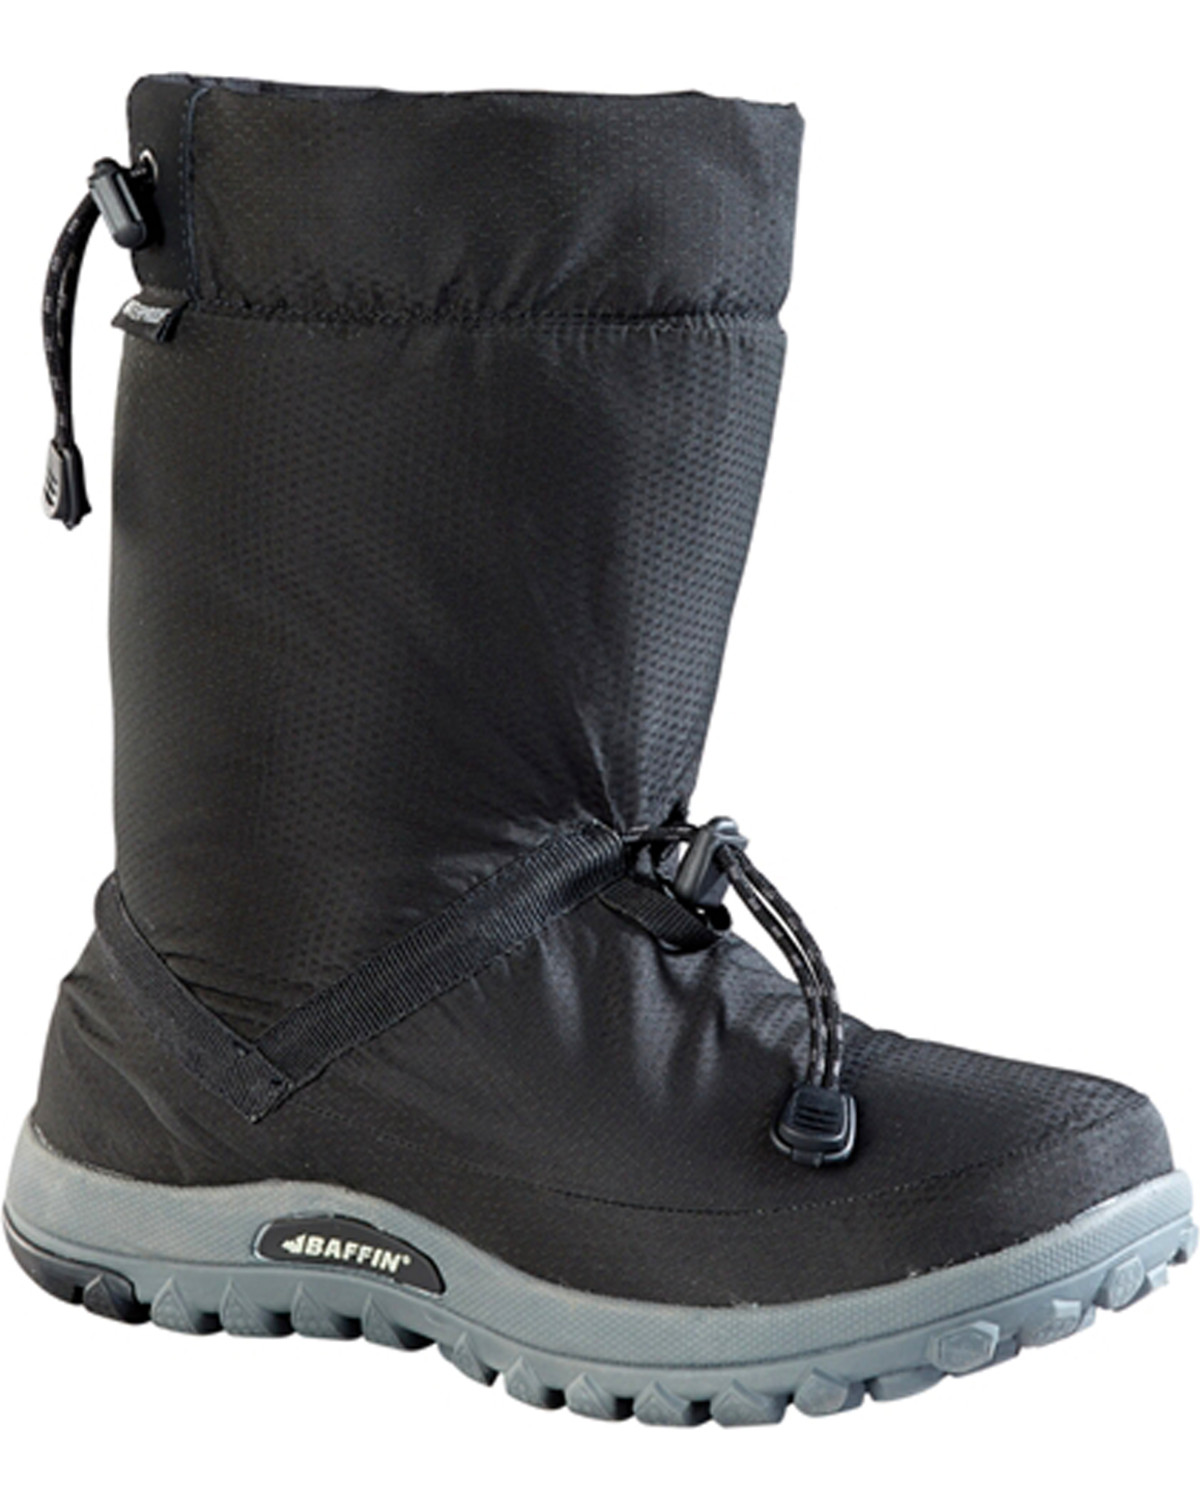 e468be0dc6b Baffin Men's Ease Waterproof Insulated Boots - Round Toe